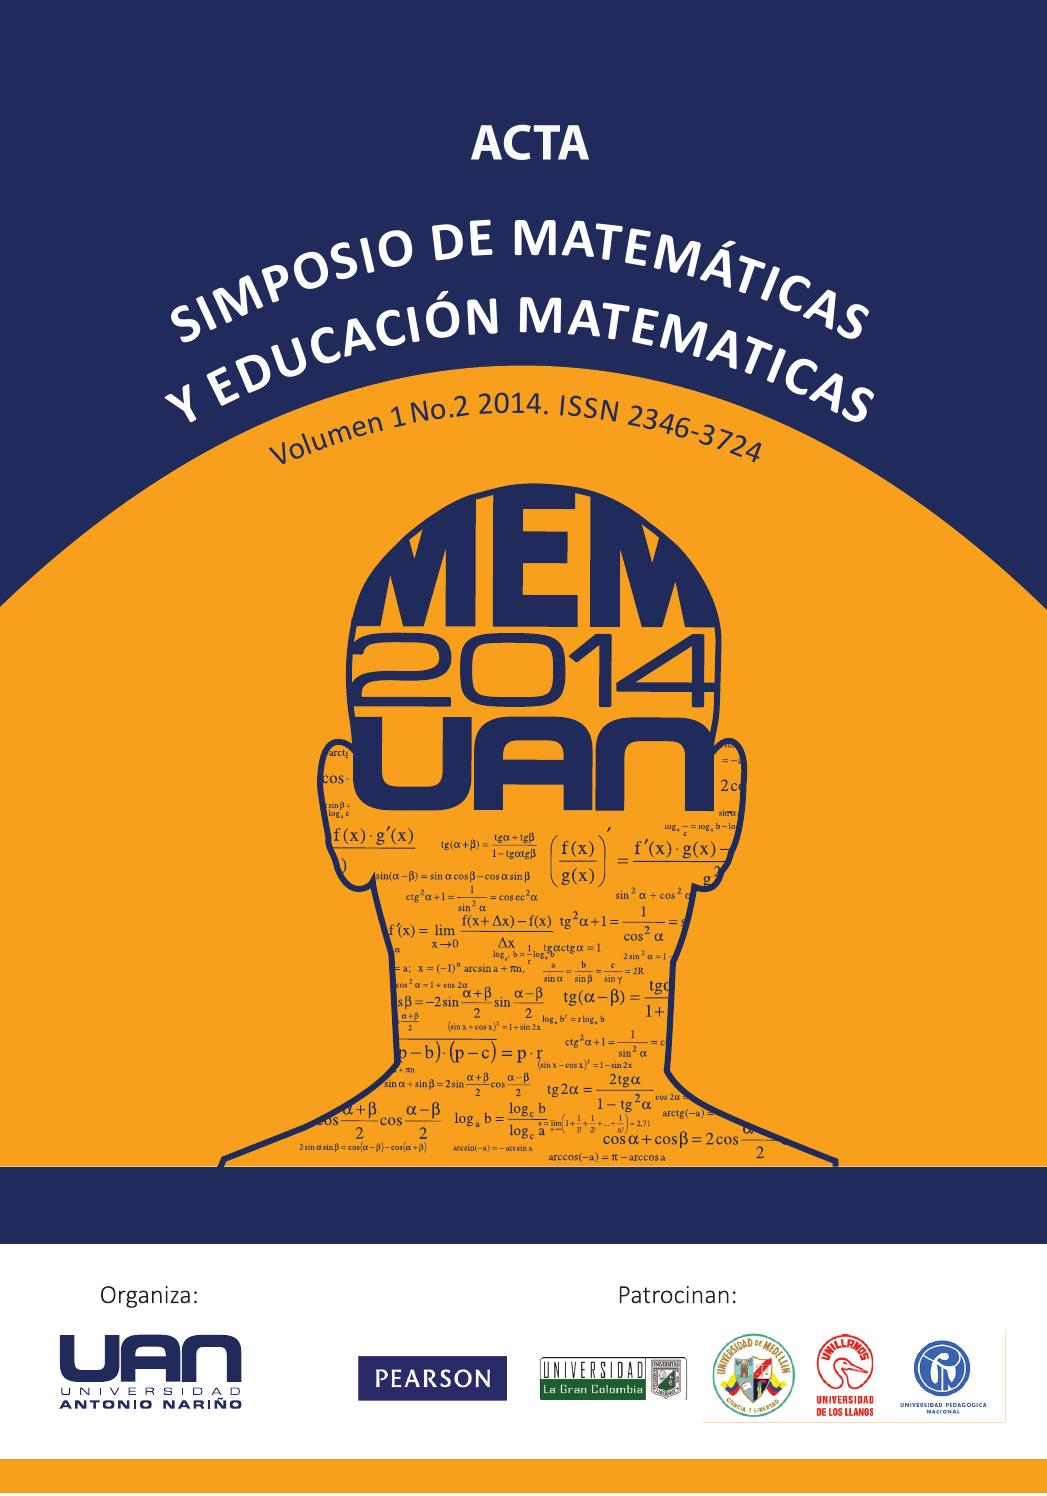 Simposioyeducacion matematica2014 2 by FONDO EDITORIAL UNIVERSIDAD ANTONIO  NARIÑO - issuu